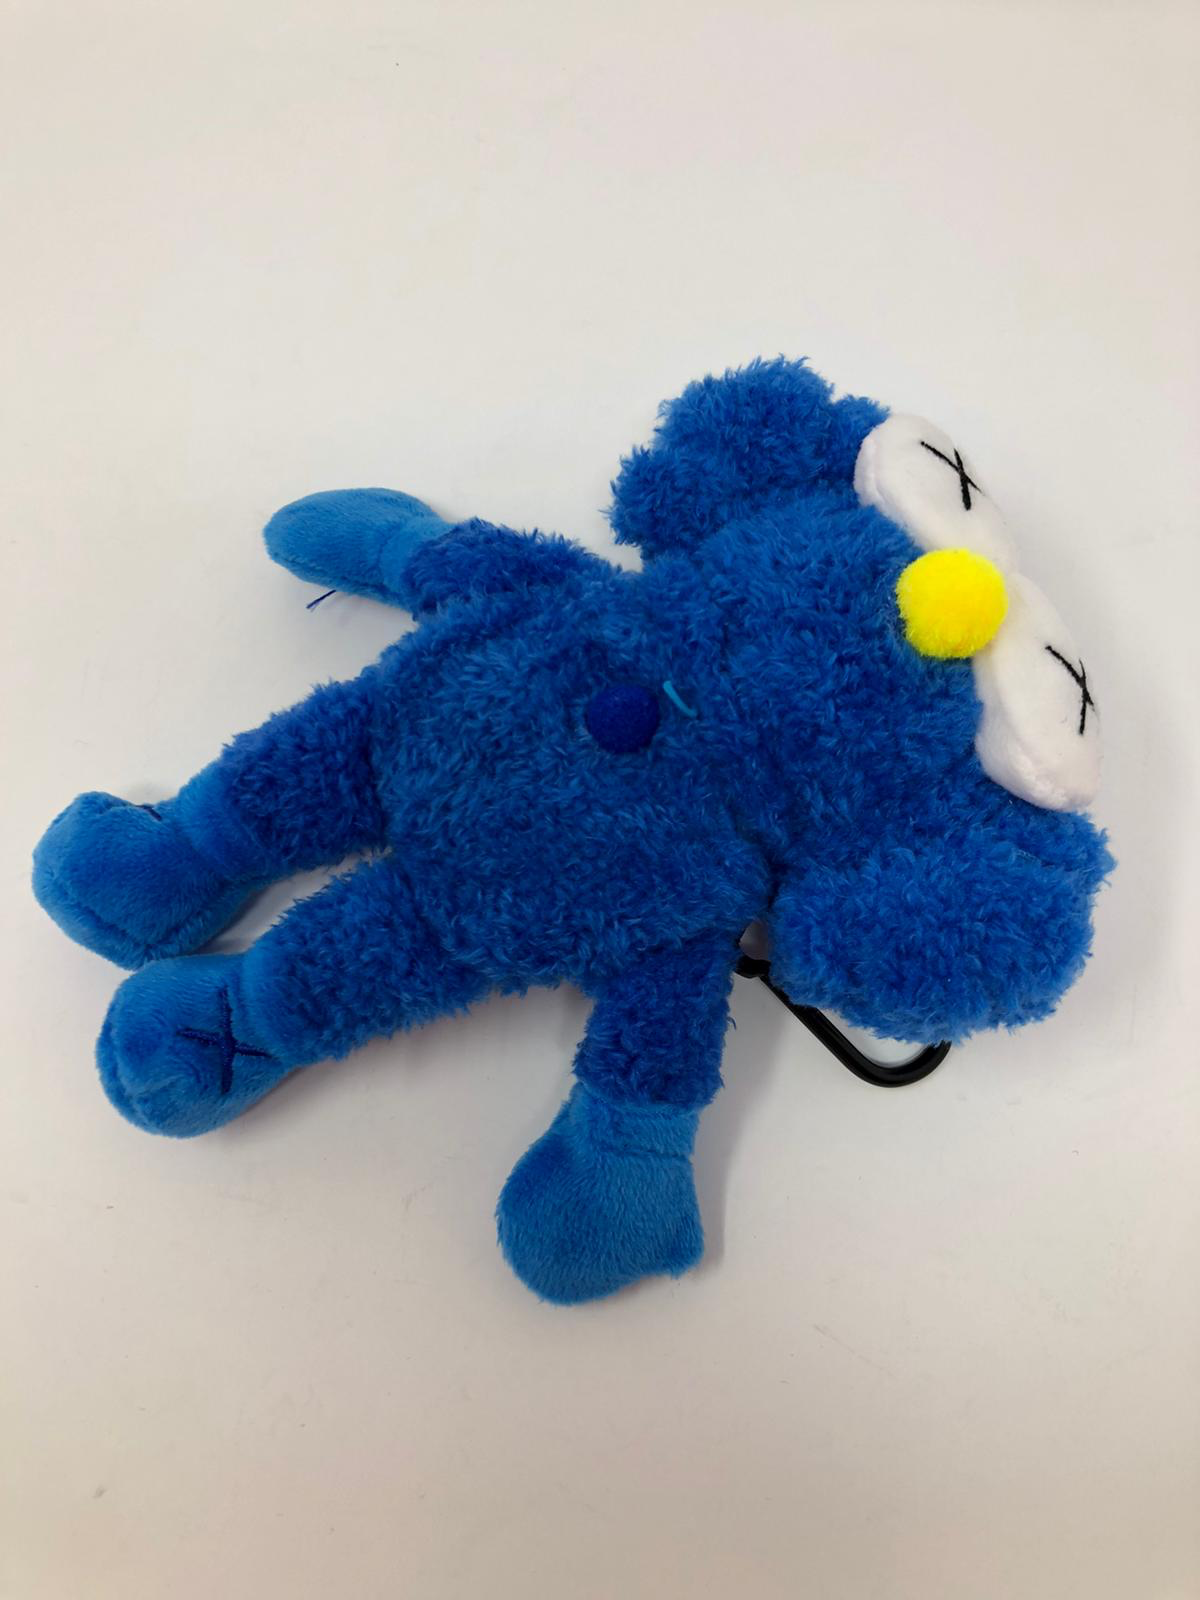 Plush Kaws Inspired AirPods Case (Blue) *PRE-ORDER CASE WILL SHIP IN 2-3 WEEKS*